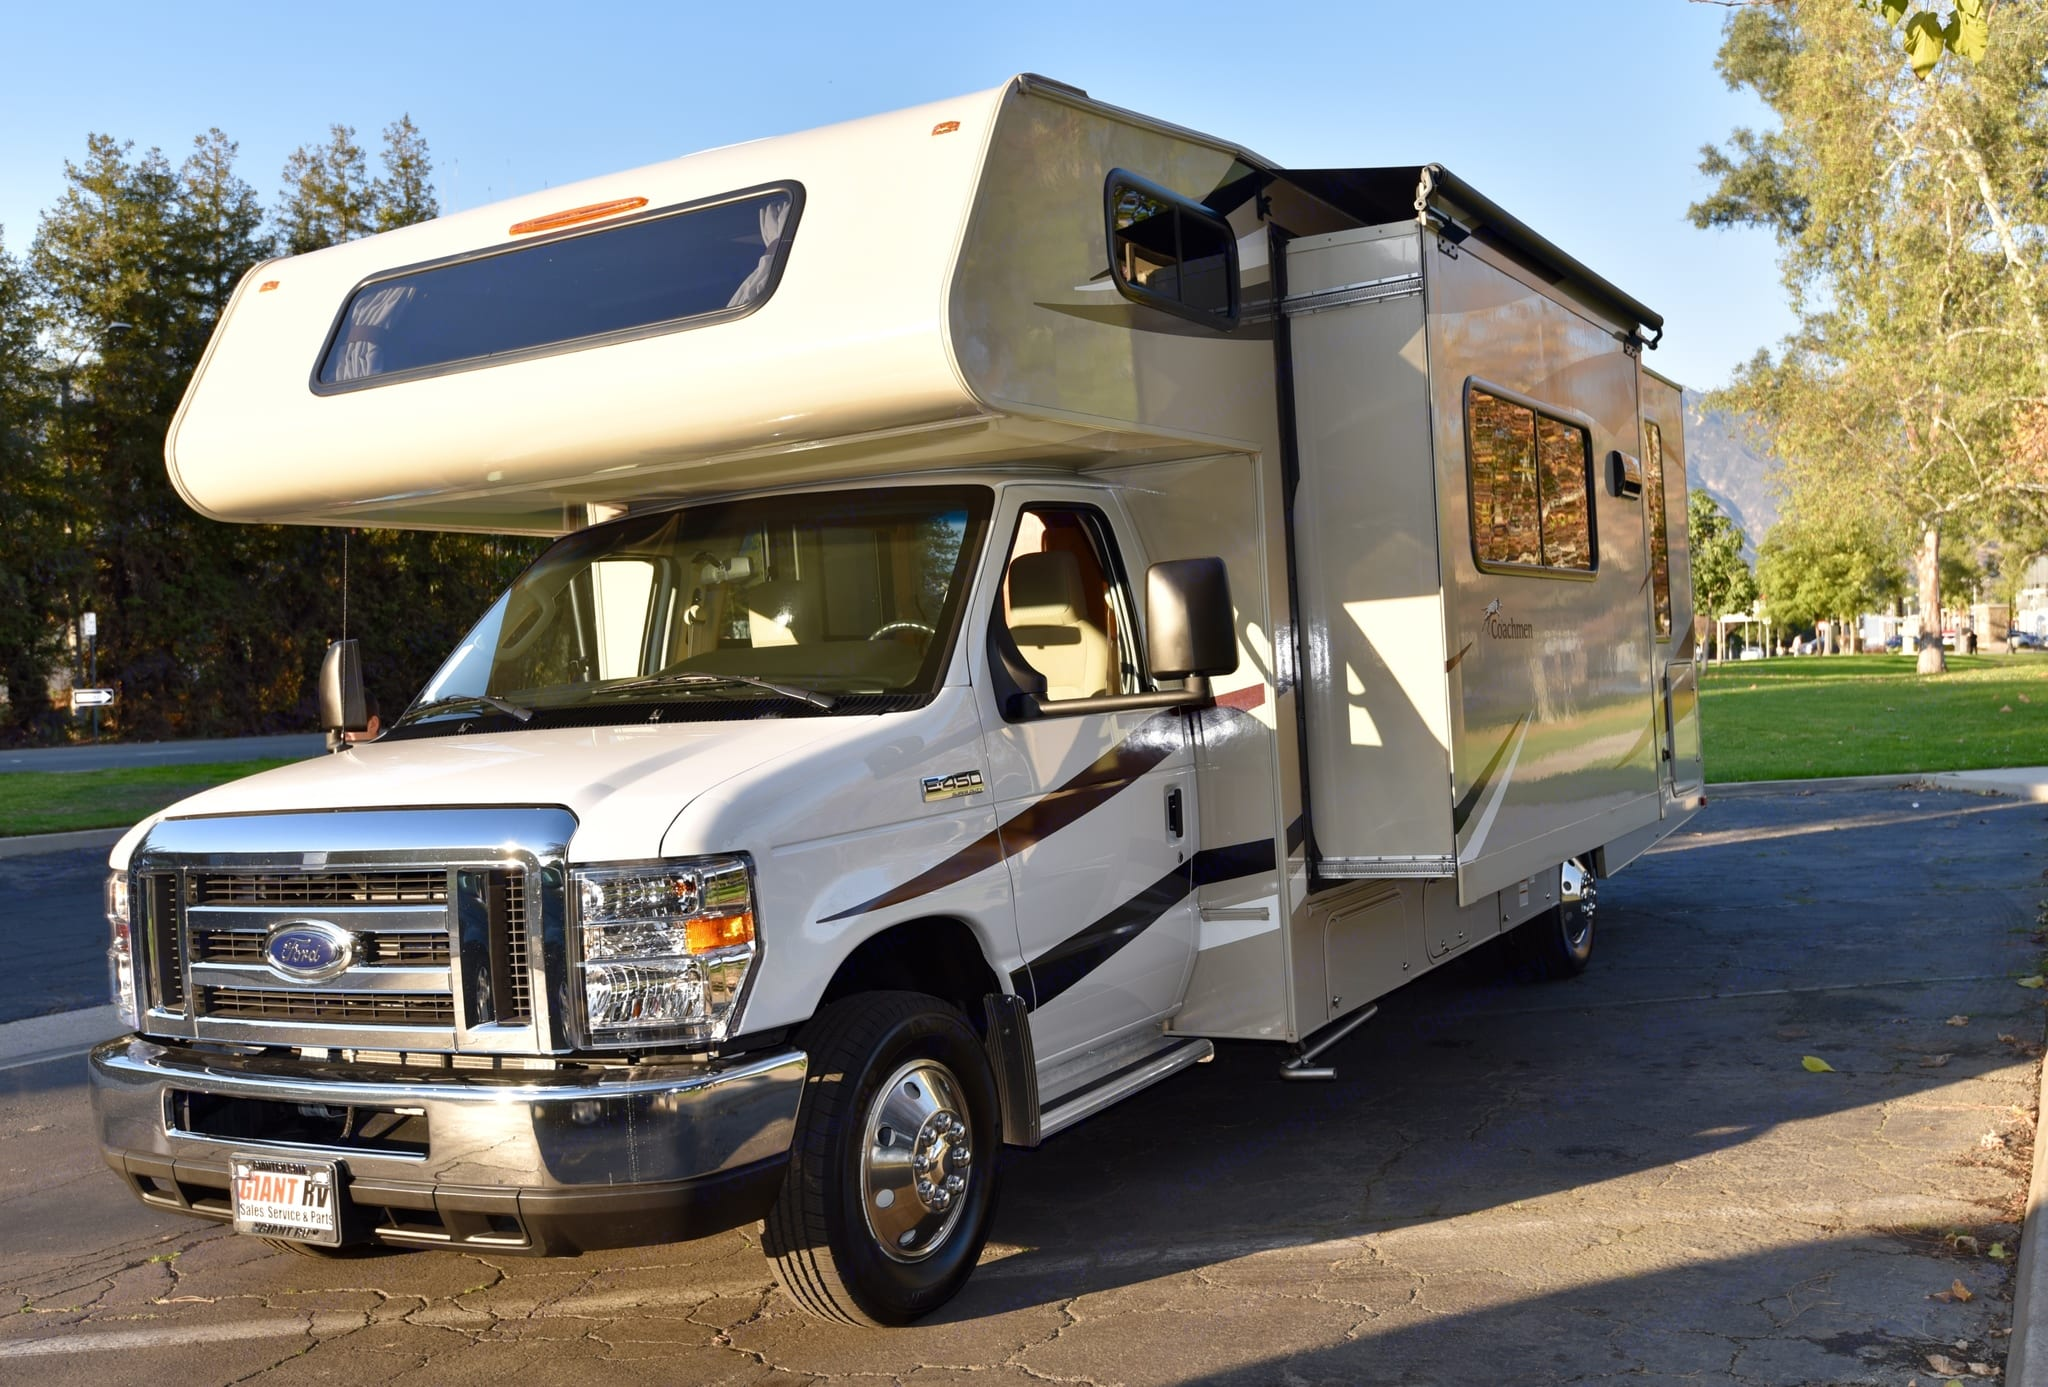 One Slide (stove/oven and couch slide out to enlarge kitchen & living room areas). Coachmen Leprechaun 2018